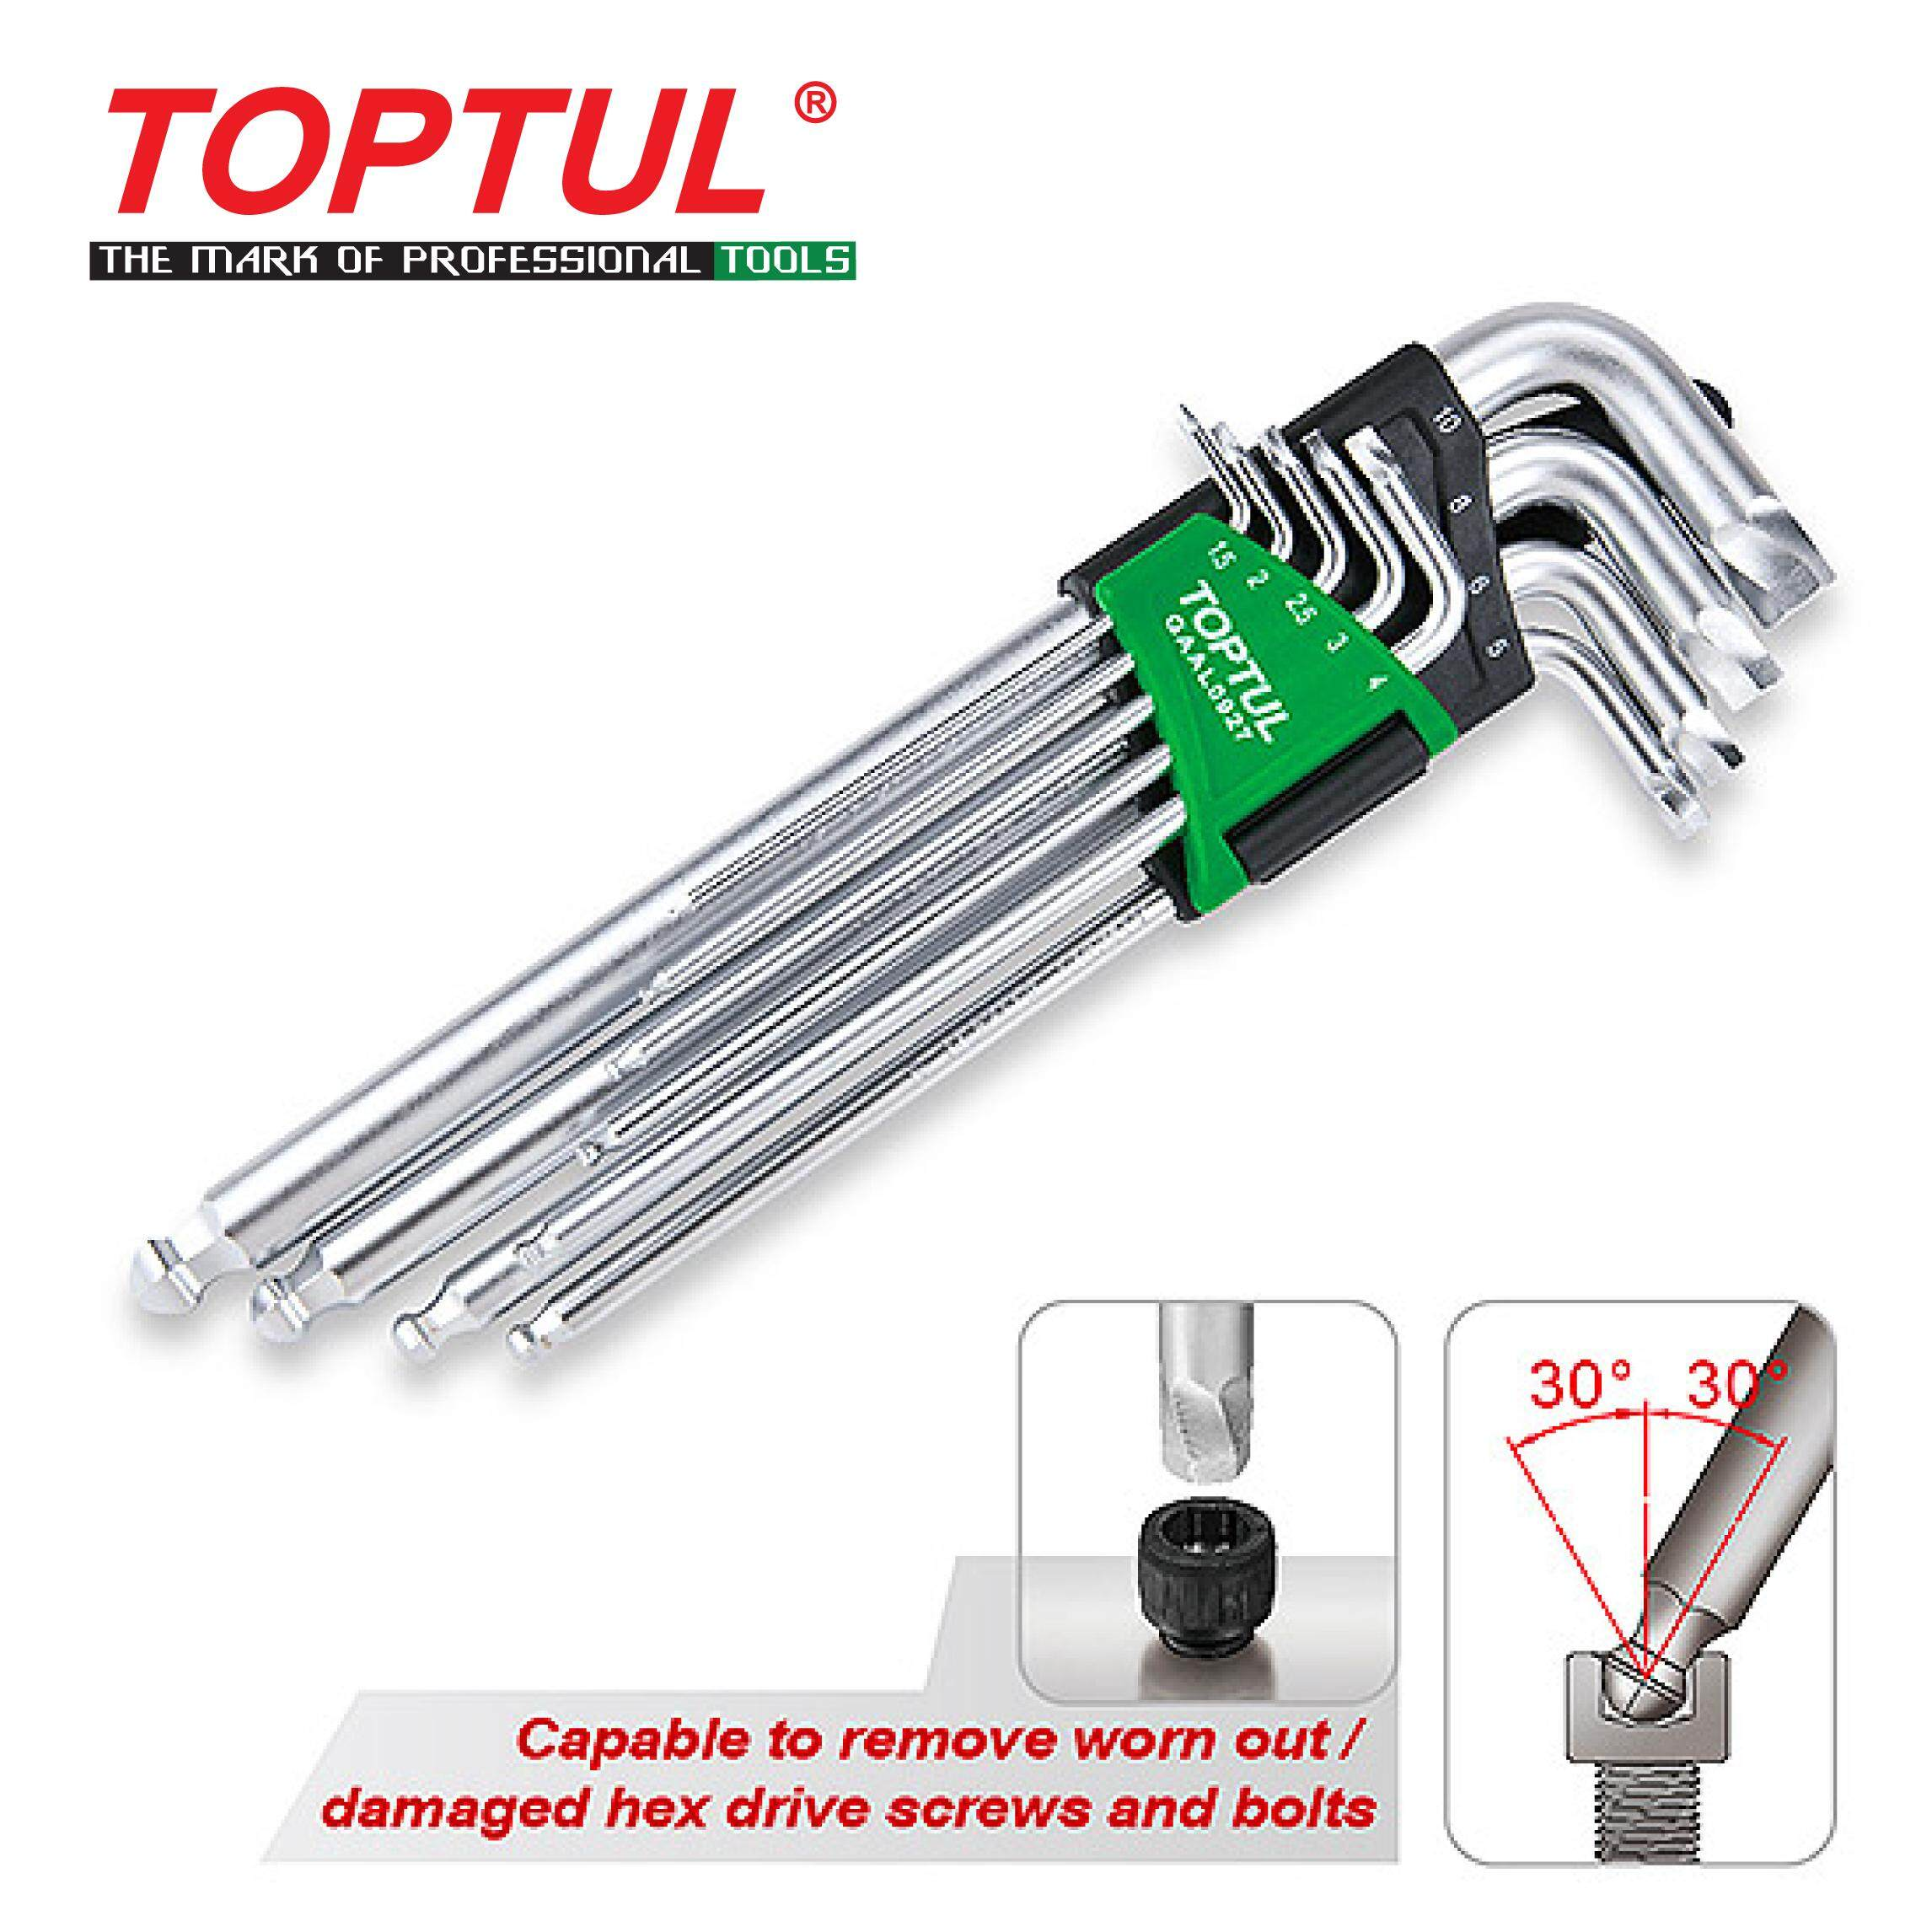 TOPTUL 9PCS Extra Long Type Ball Point Hex Key Wrench Set - Extractor (GAAL0927)